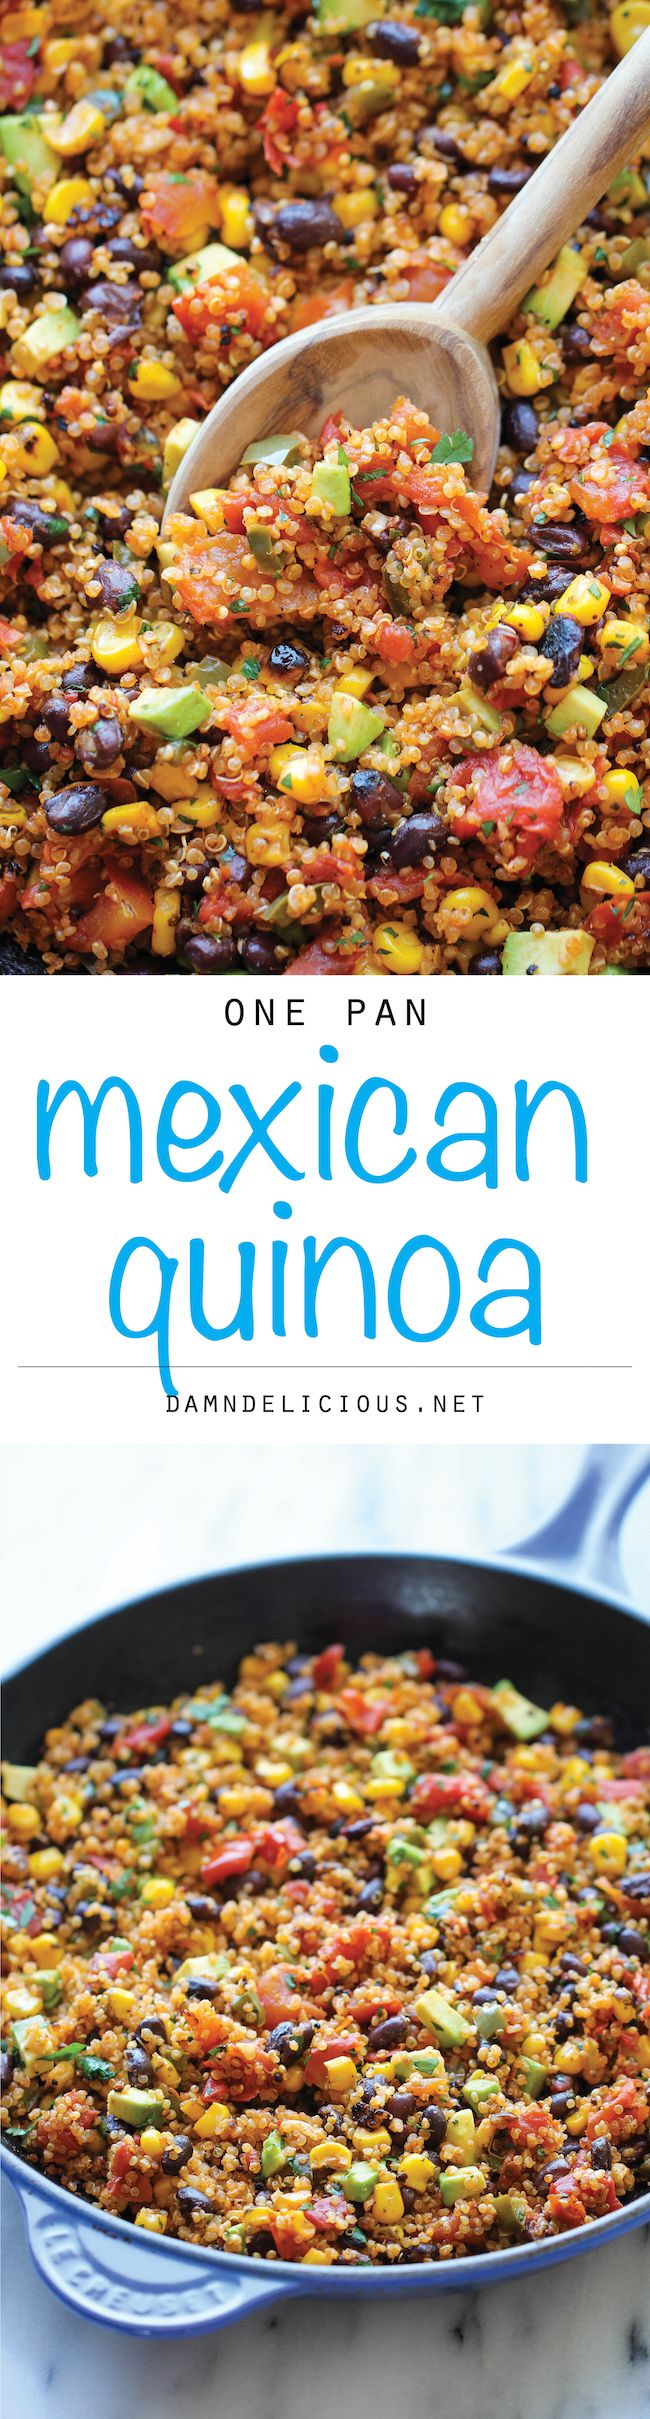 One Pan Mexican Quinoa - Wonderfully light, healthy and nutritious. And it's so easy to make - even the quinoa is cooked right in the pan! #recipe